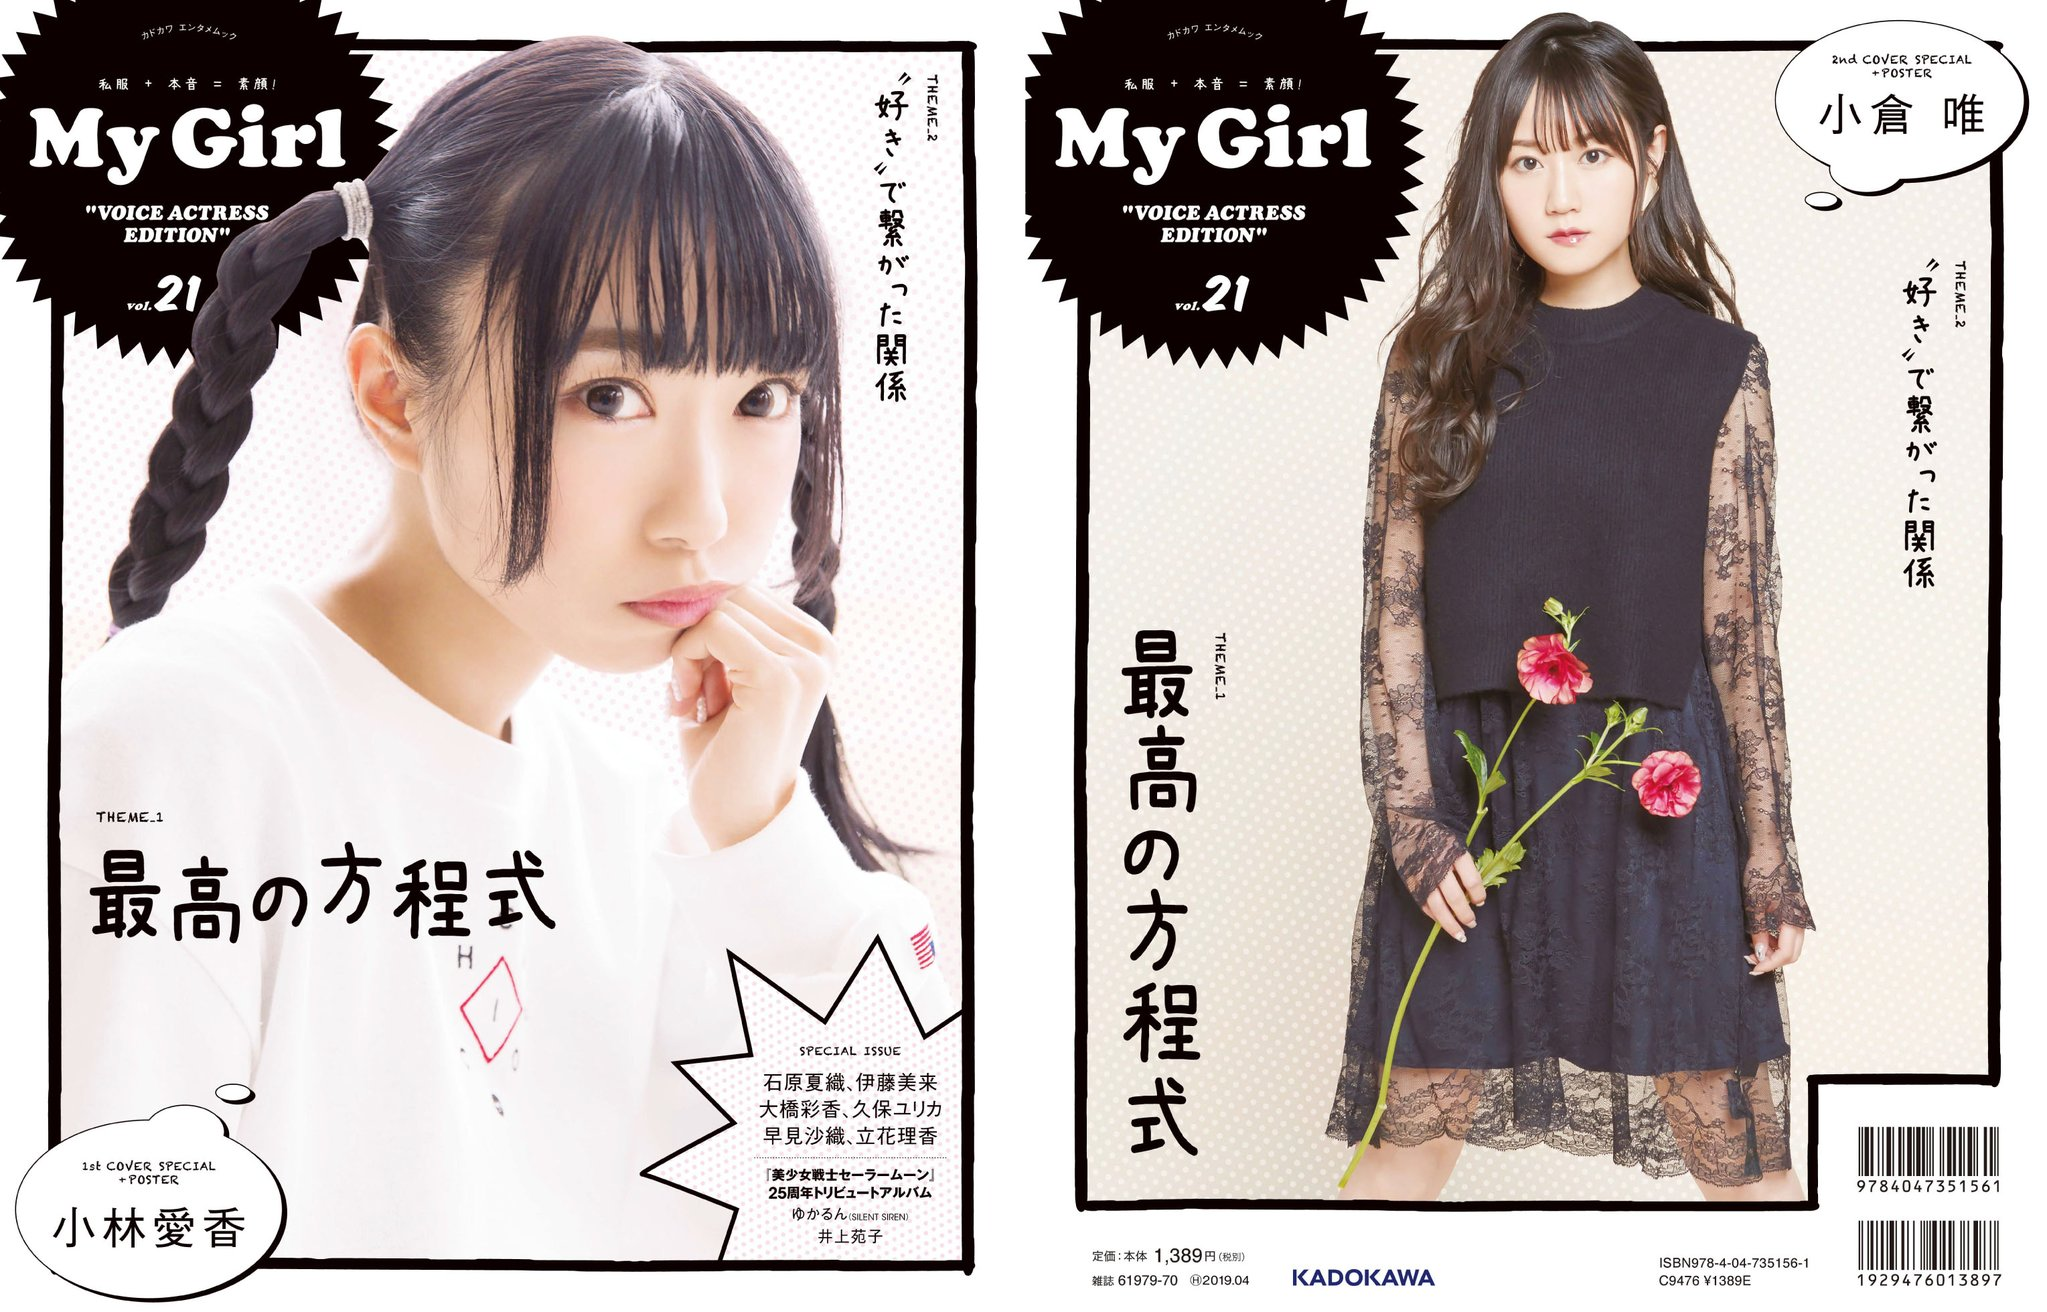 My Girl vol.21 VOICE ACTRESS EDITION 앞뒤 ..